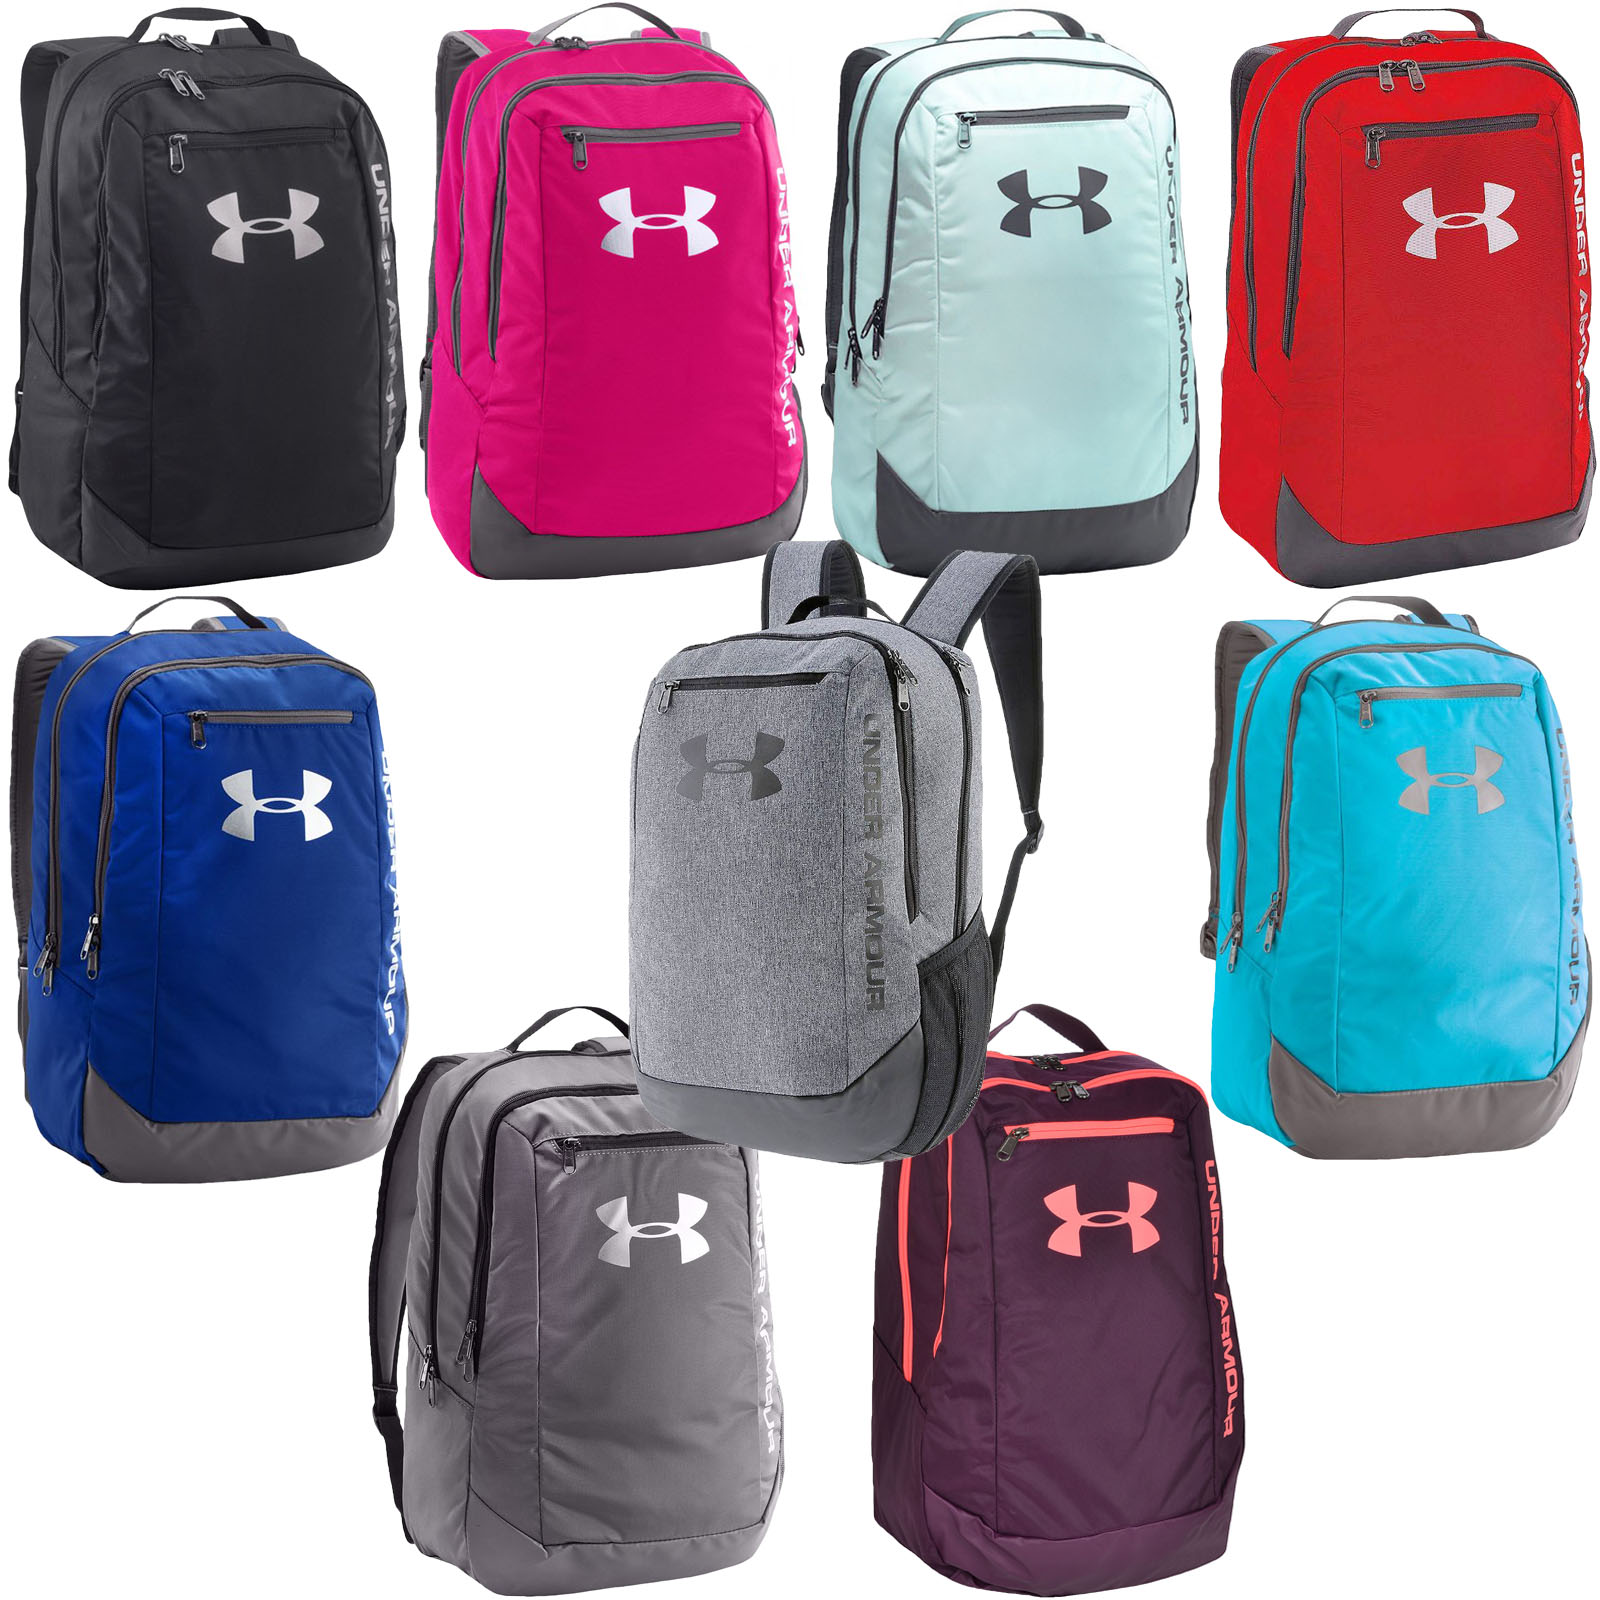 003459821f Under Armour 2017 UA Hustle LDWR 24l Laptop Backpack Gym School Bag ...